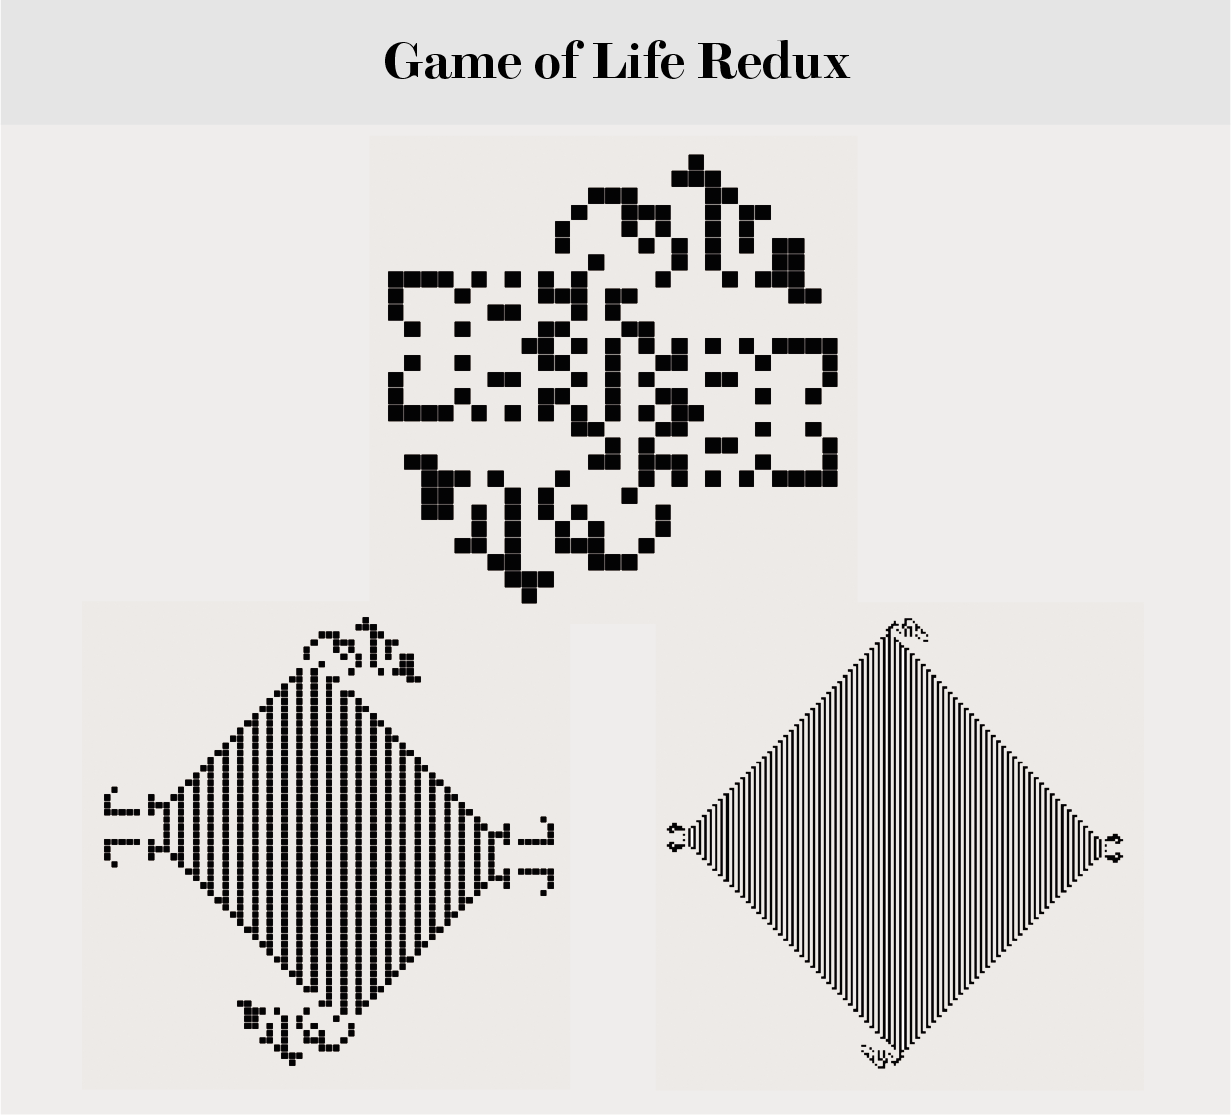 Graphic showing patterns that cover the grid of stable live cell populations.